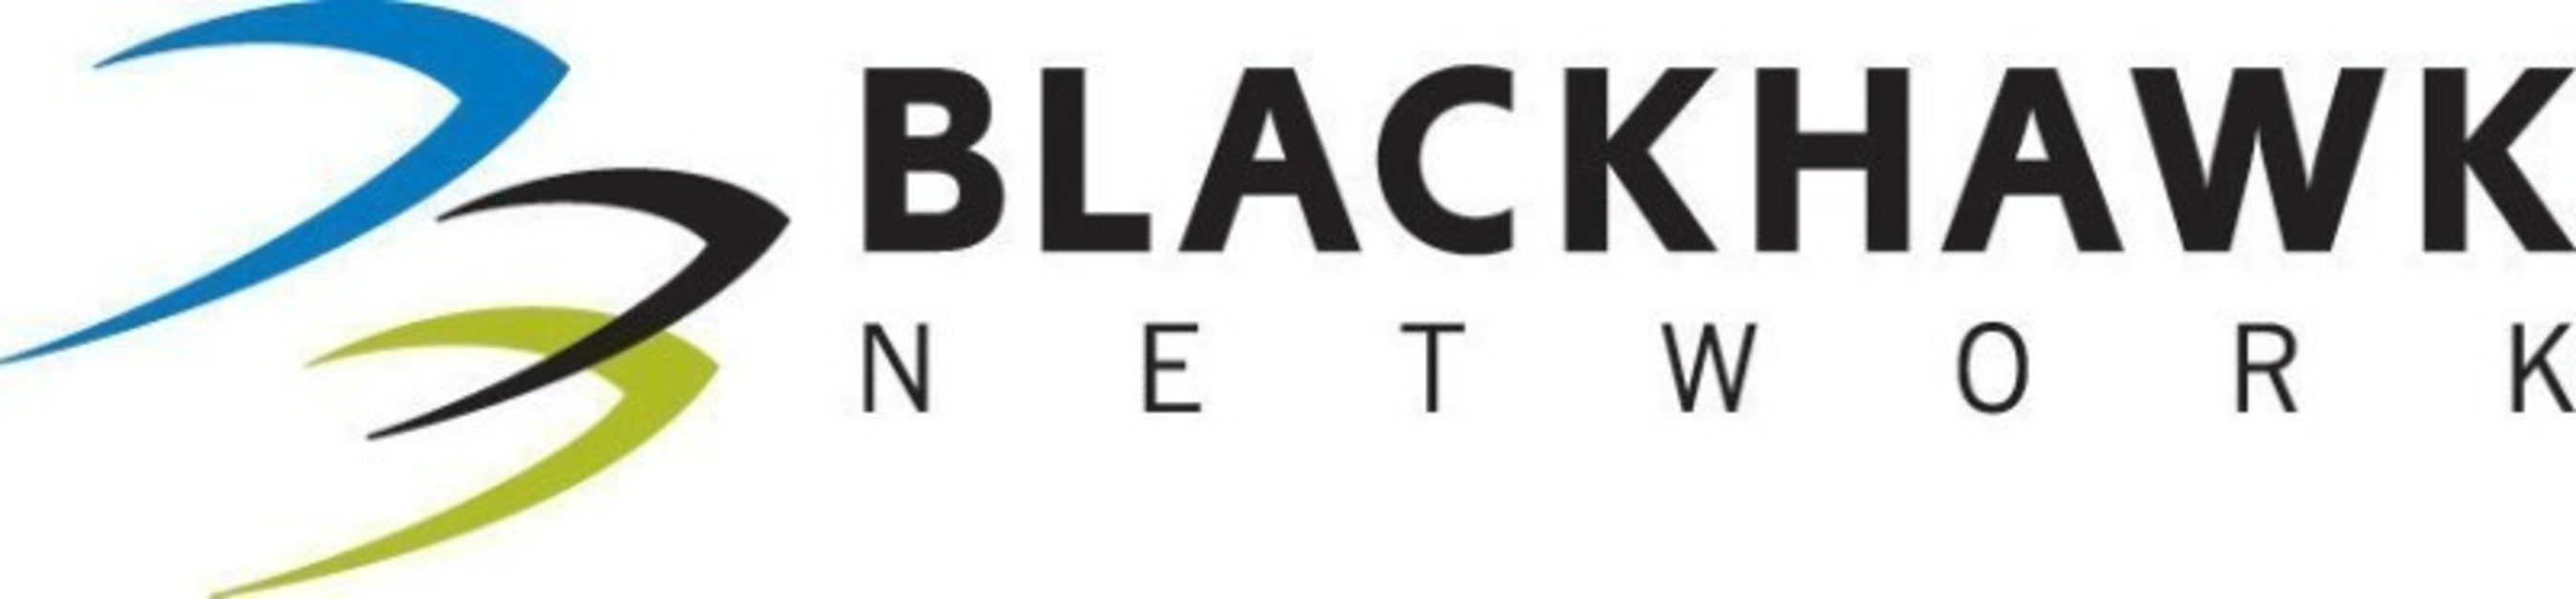 Blackhawk Network Offers Merchants Centralized B2B and B2C Physical and Digital Gift Card Solutions with Launch of Hawk Commerce